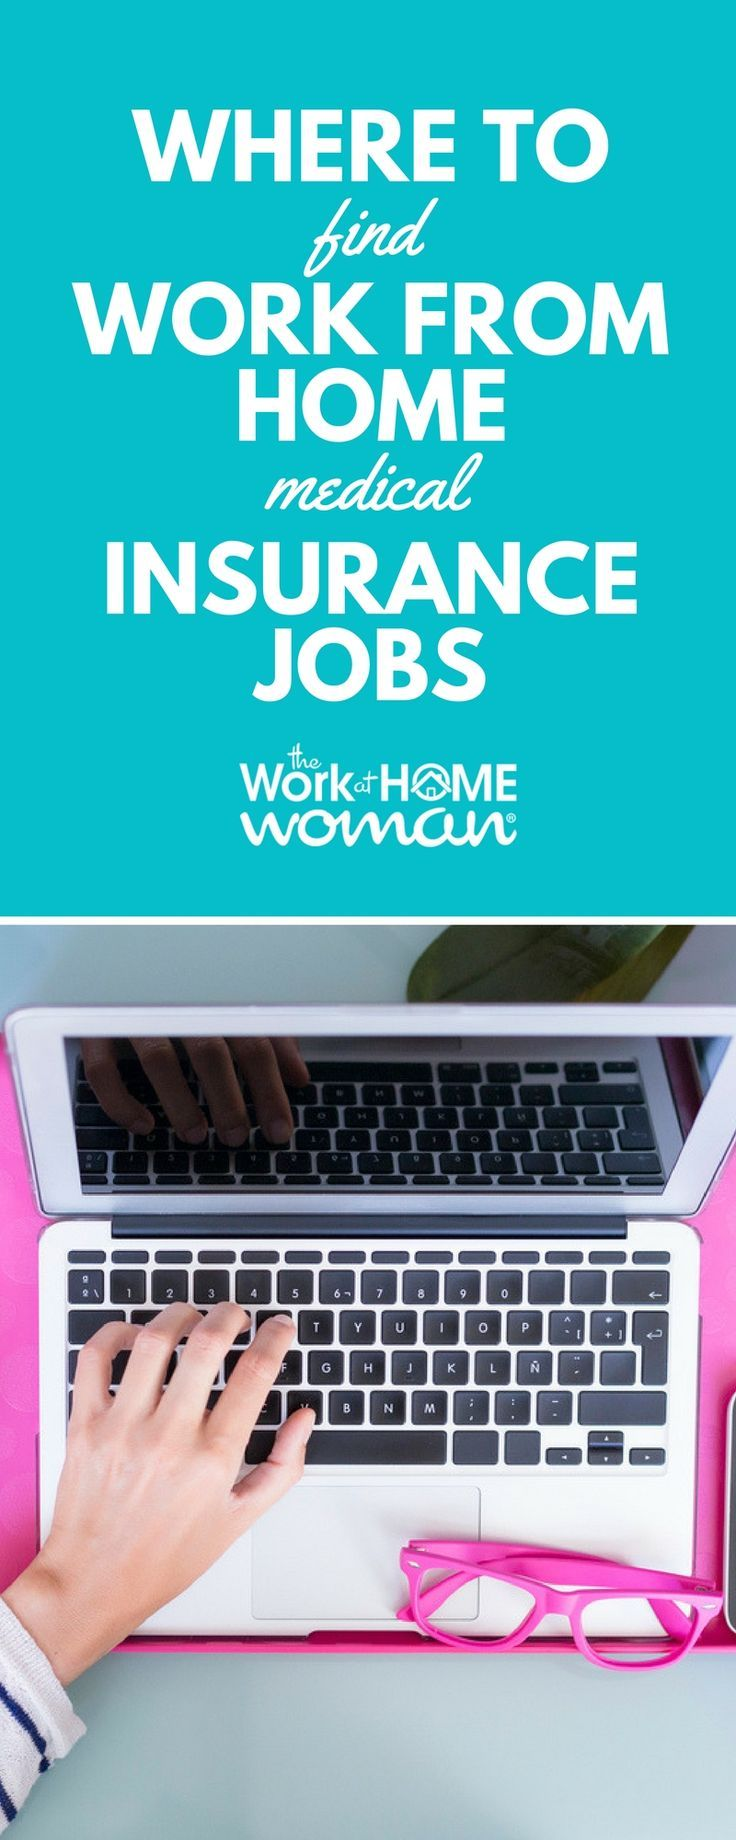 Where To Find Work From Home Medical Insurance Jobs With Images